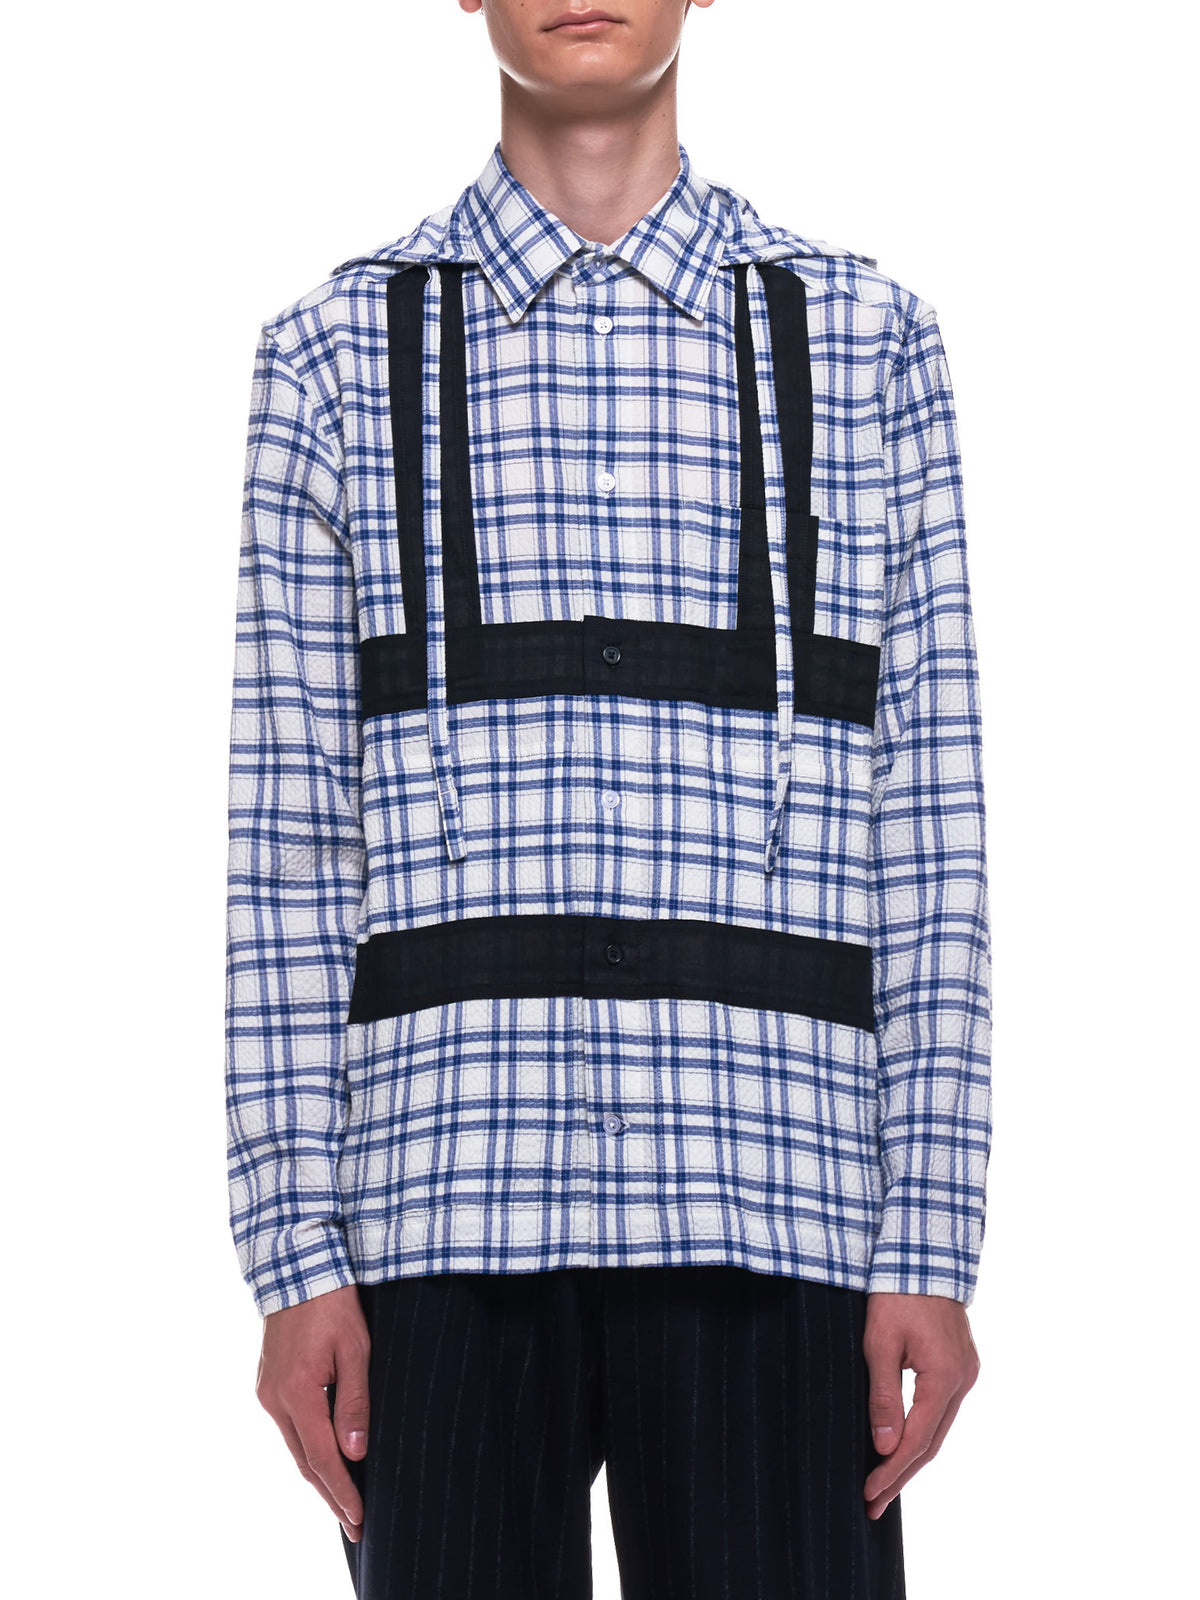 Harness Hooded Shirt (CWOSHI01-HOODED-NAVY-CHECK)